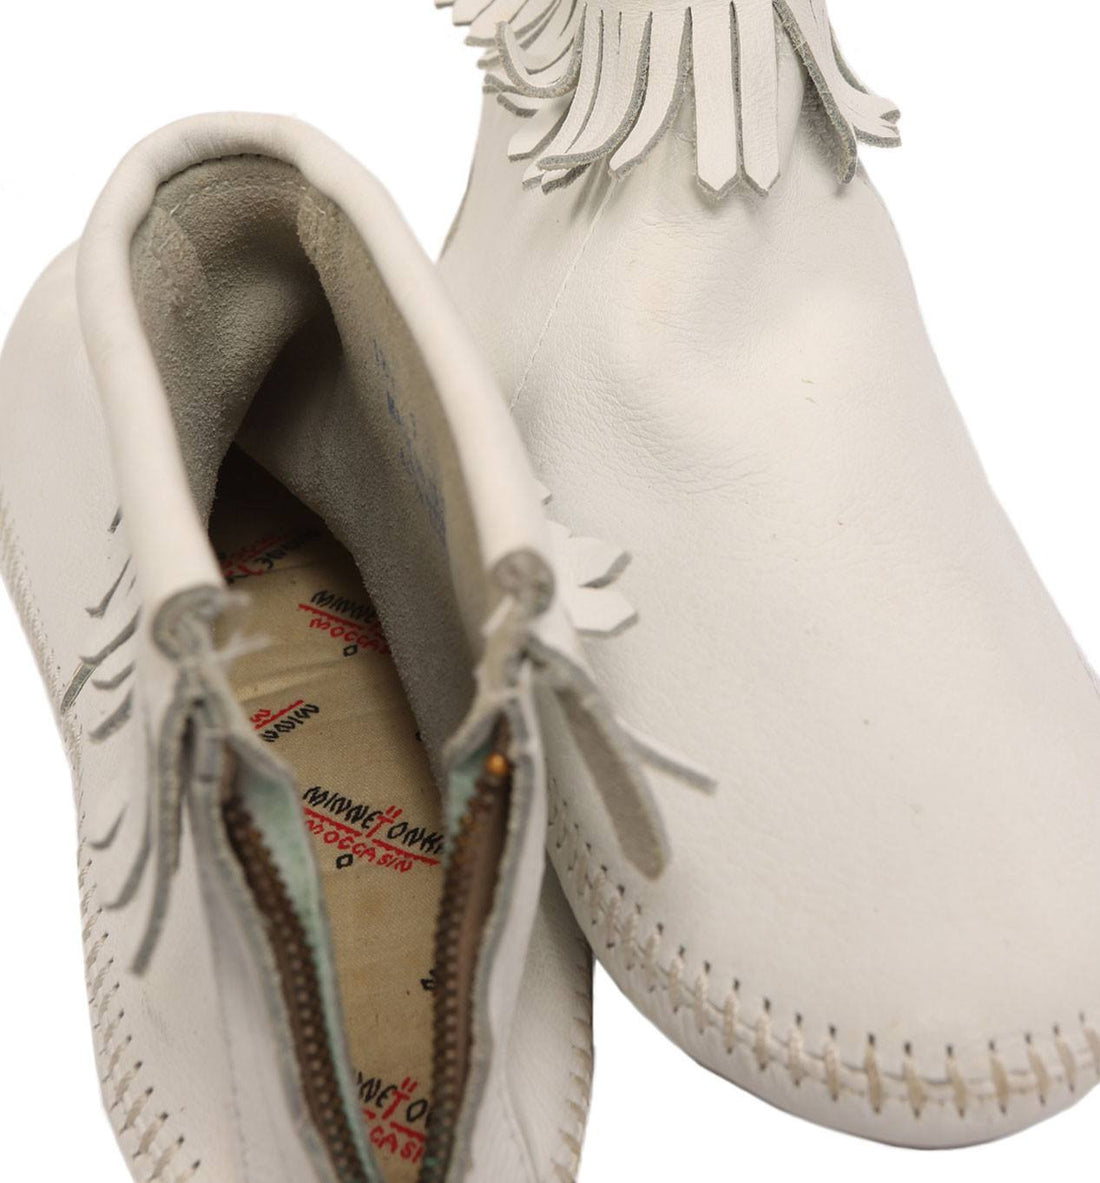 Vintage 60s White Minnetonka Moccasins - Vintage: Women's: Shoes - Iron and Resin